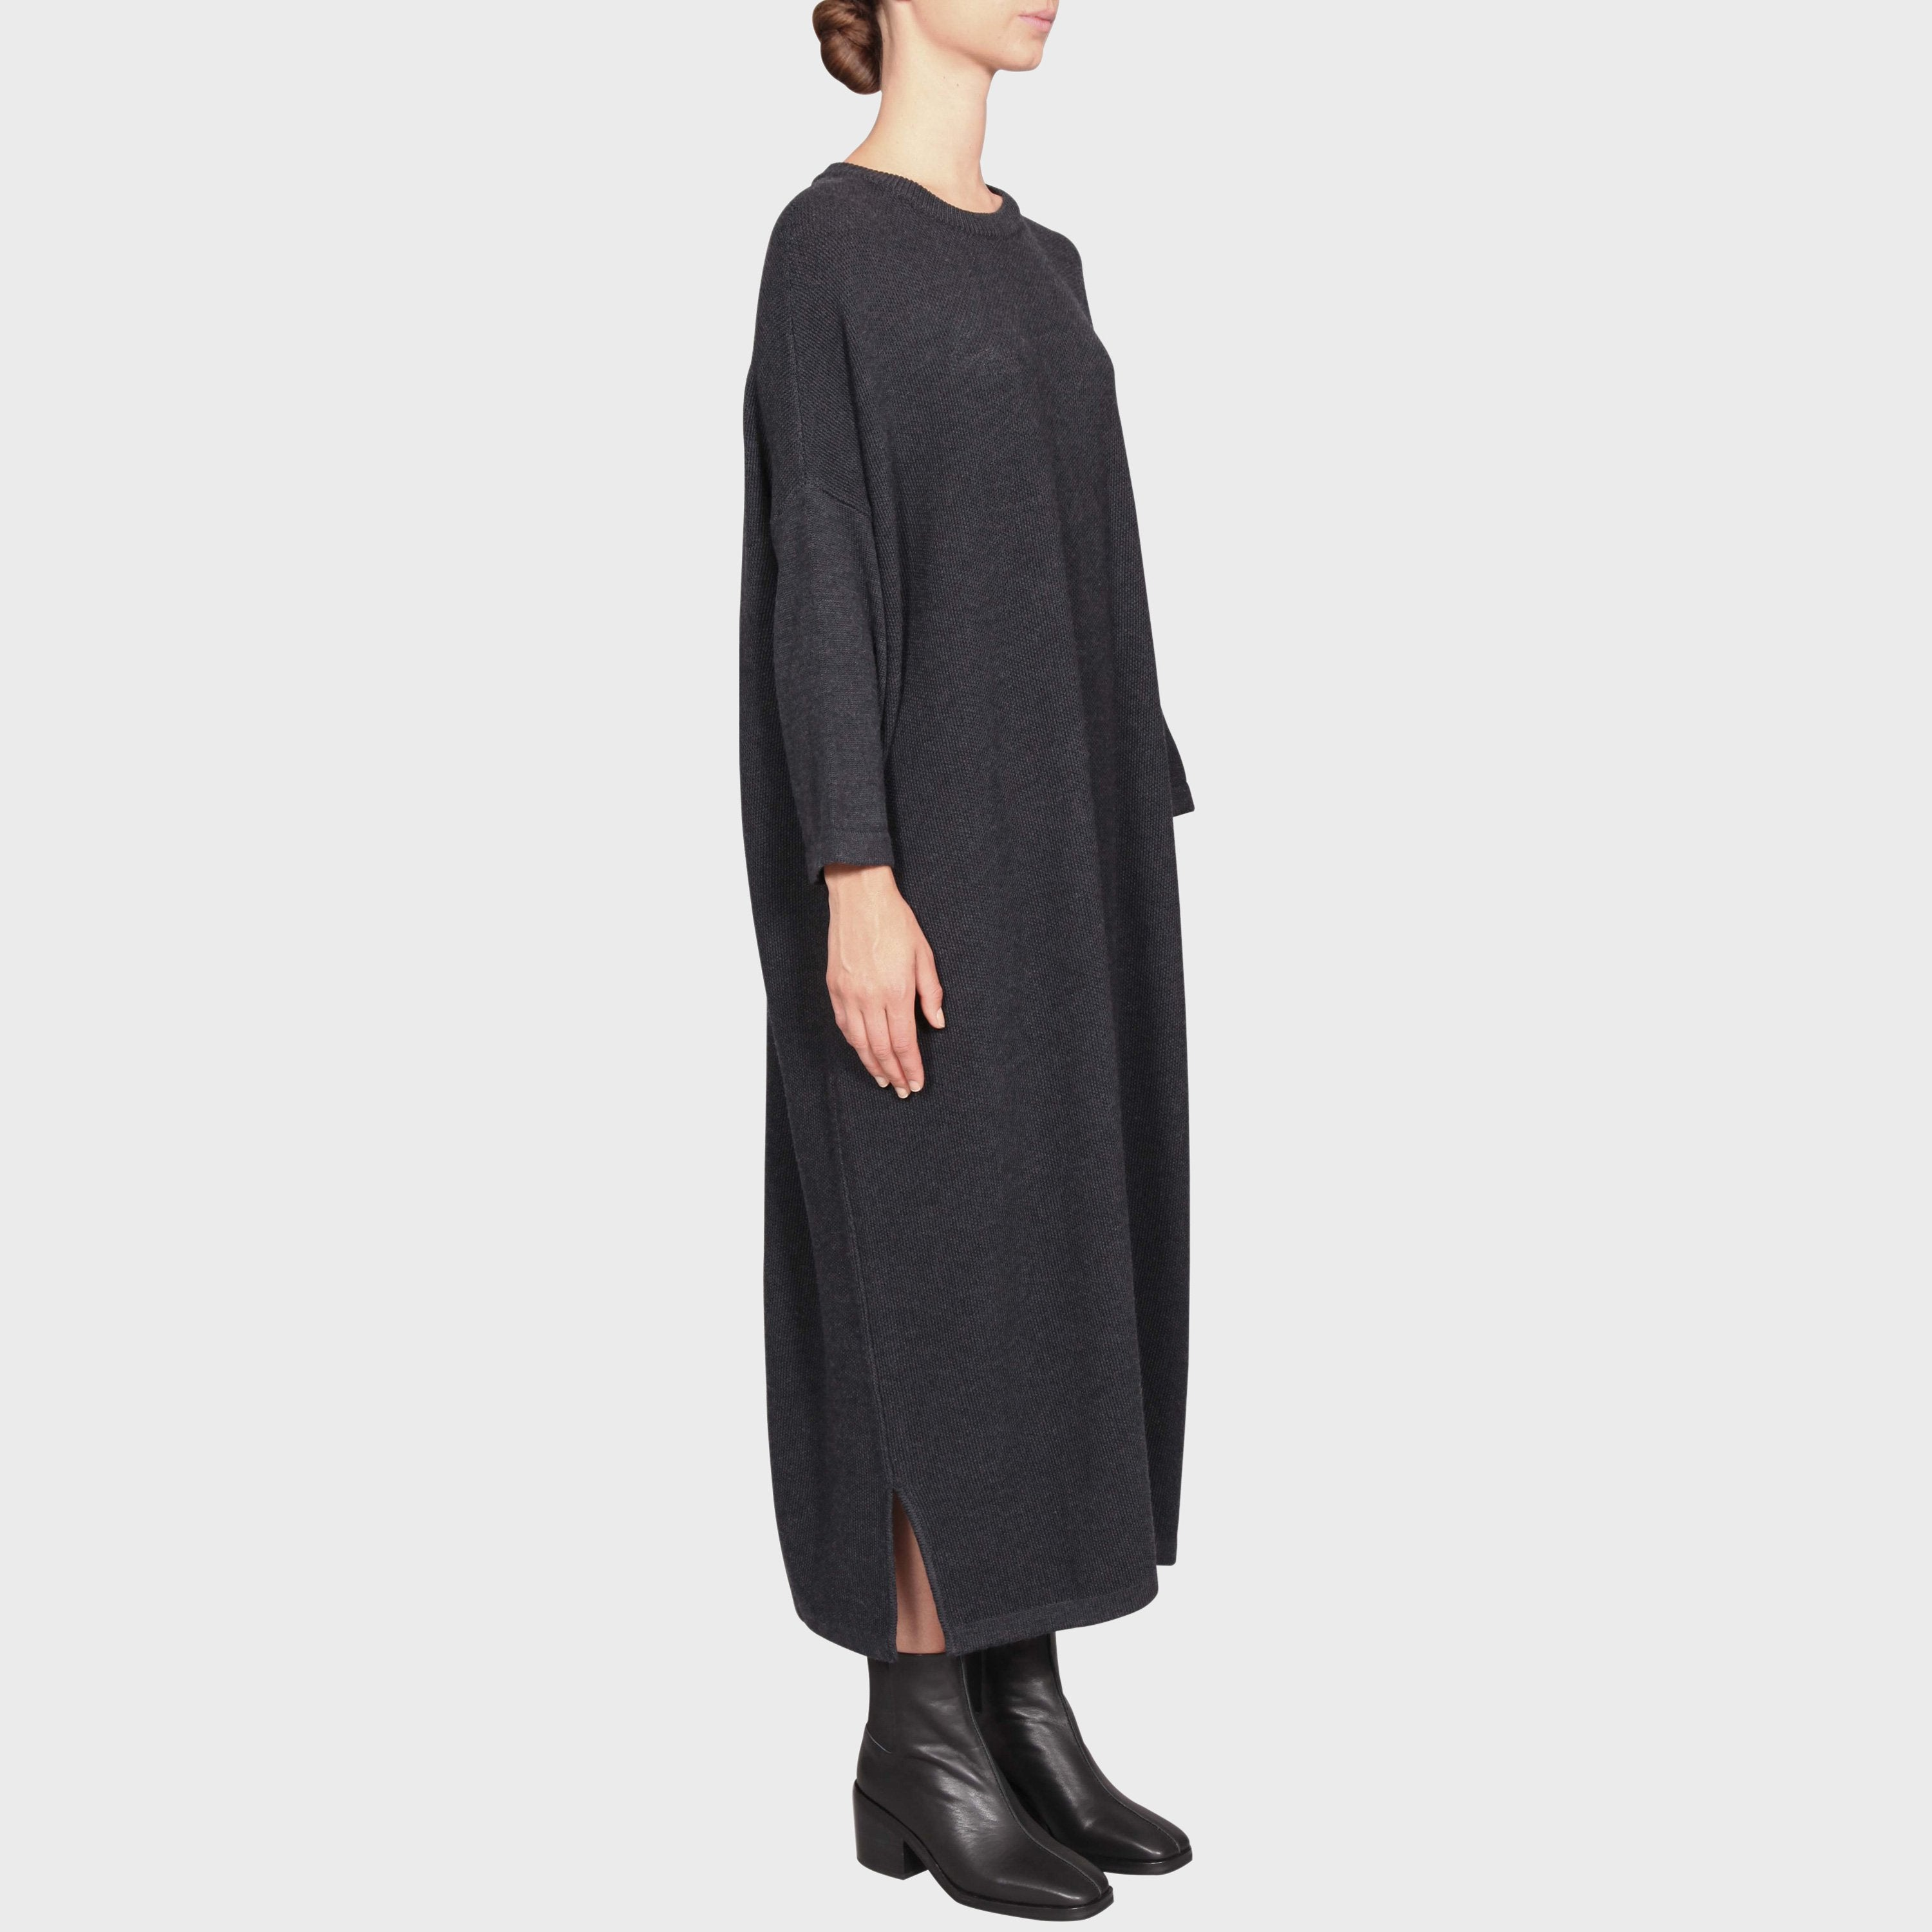 MARCELLE KNIT DRESS / CHARCOAL